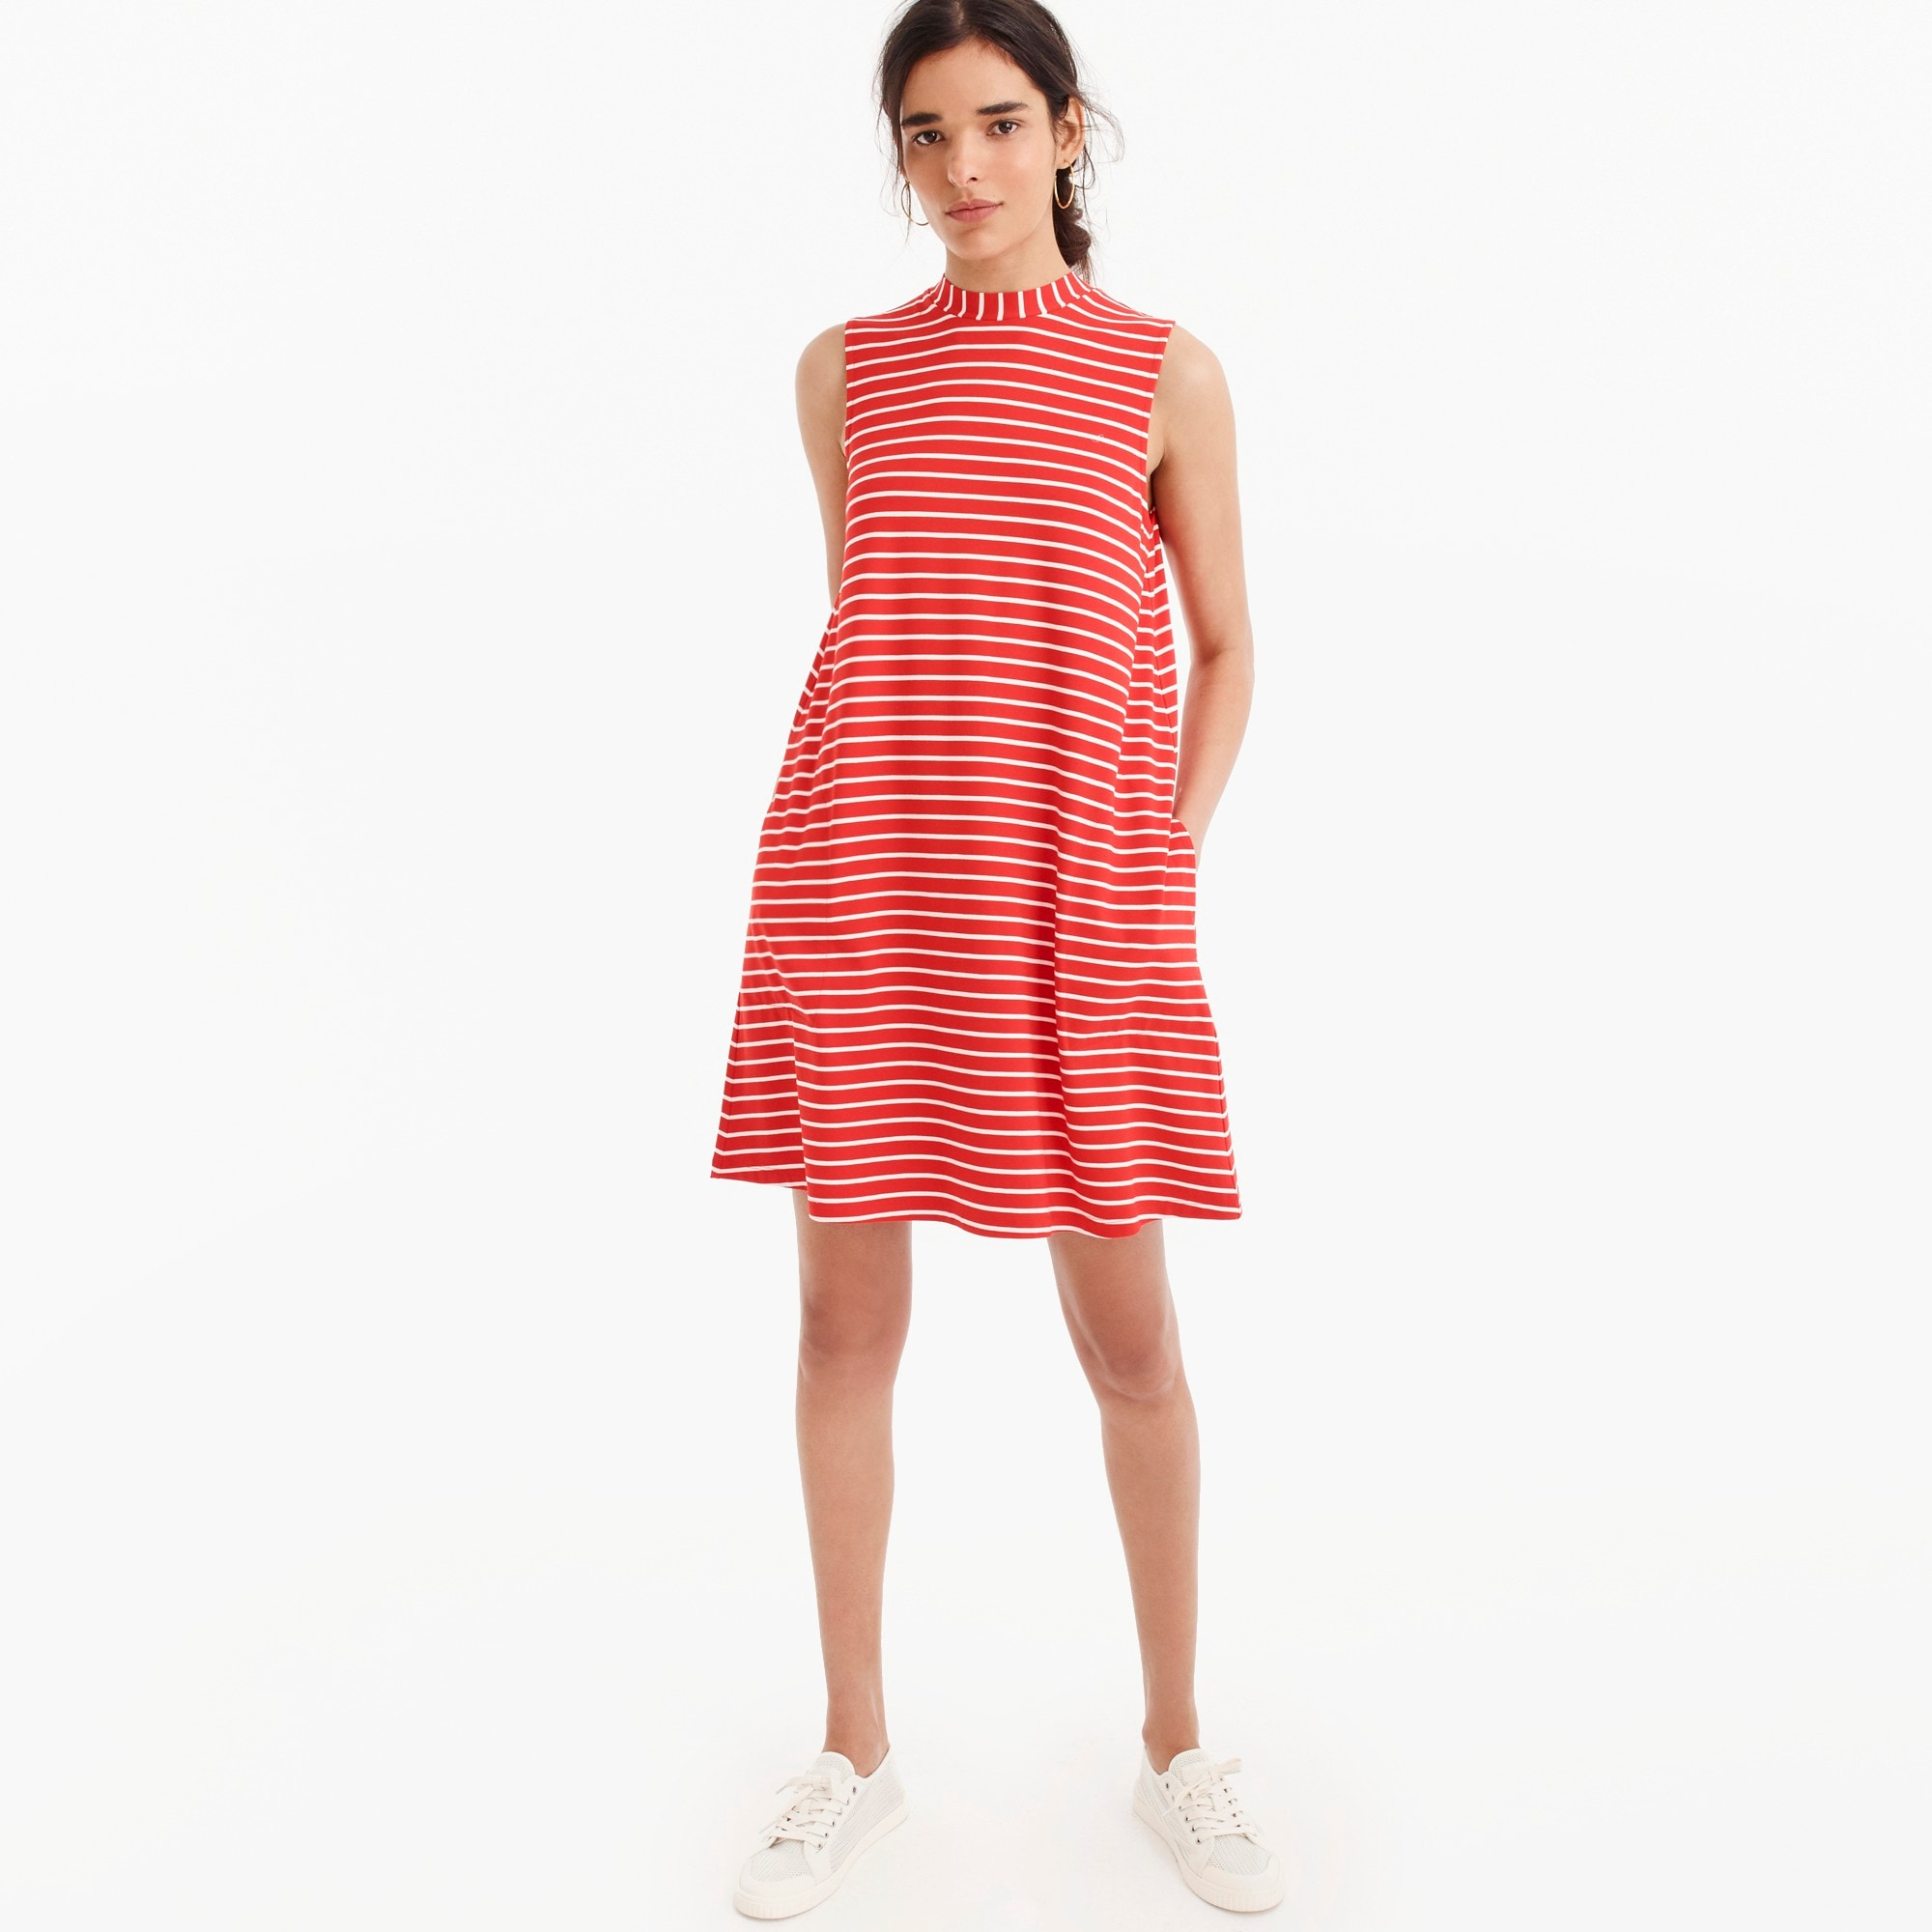 Swingy sleeveless dress in stripe women dresses c